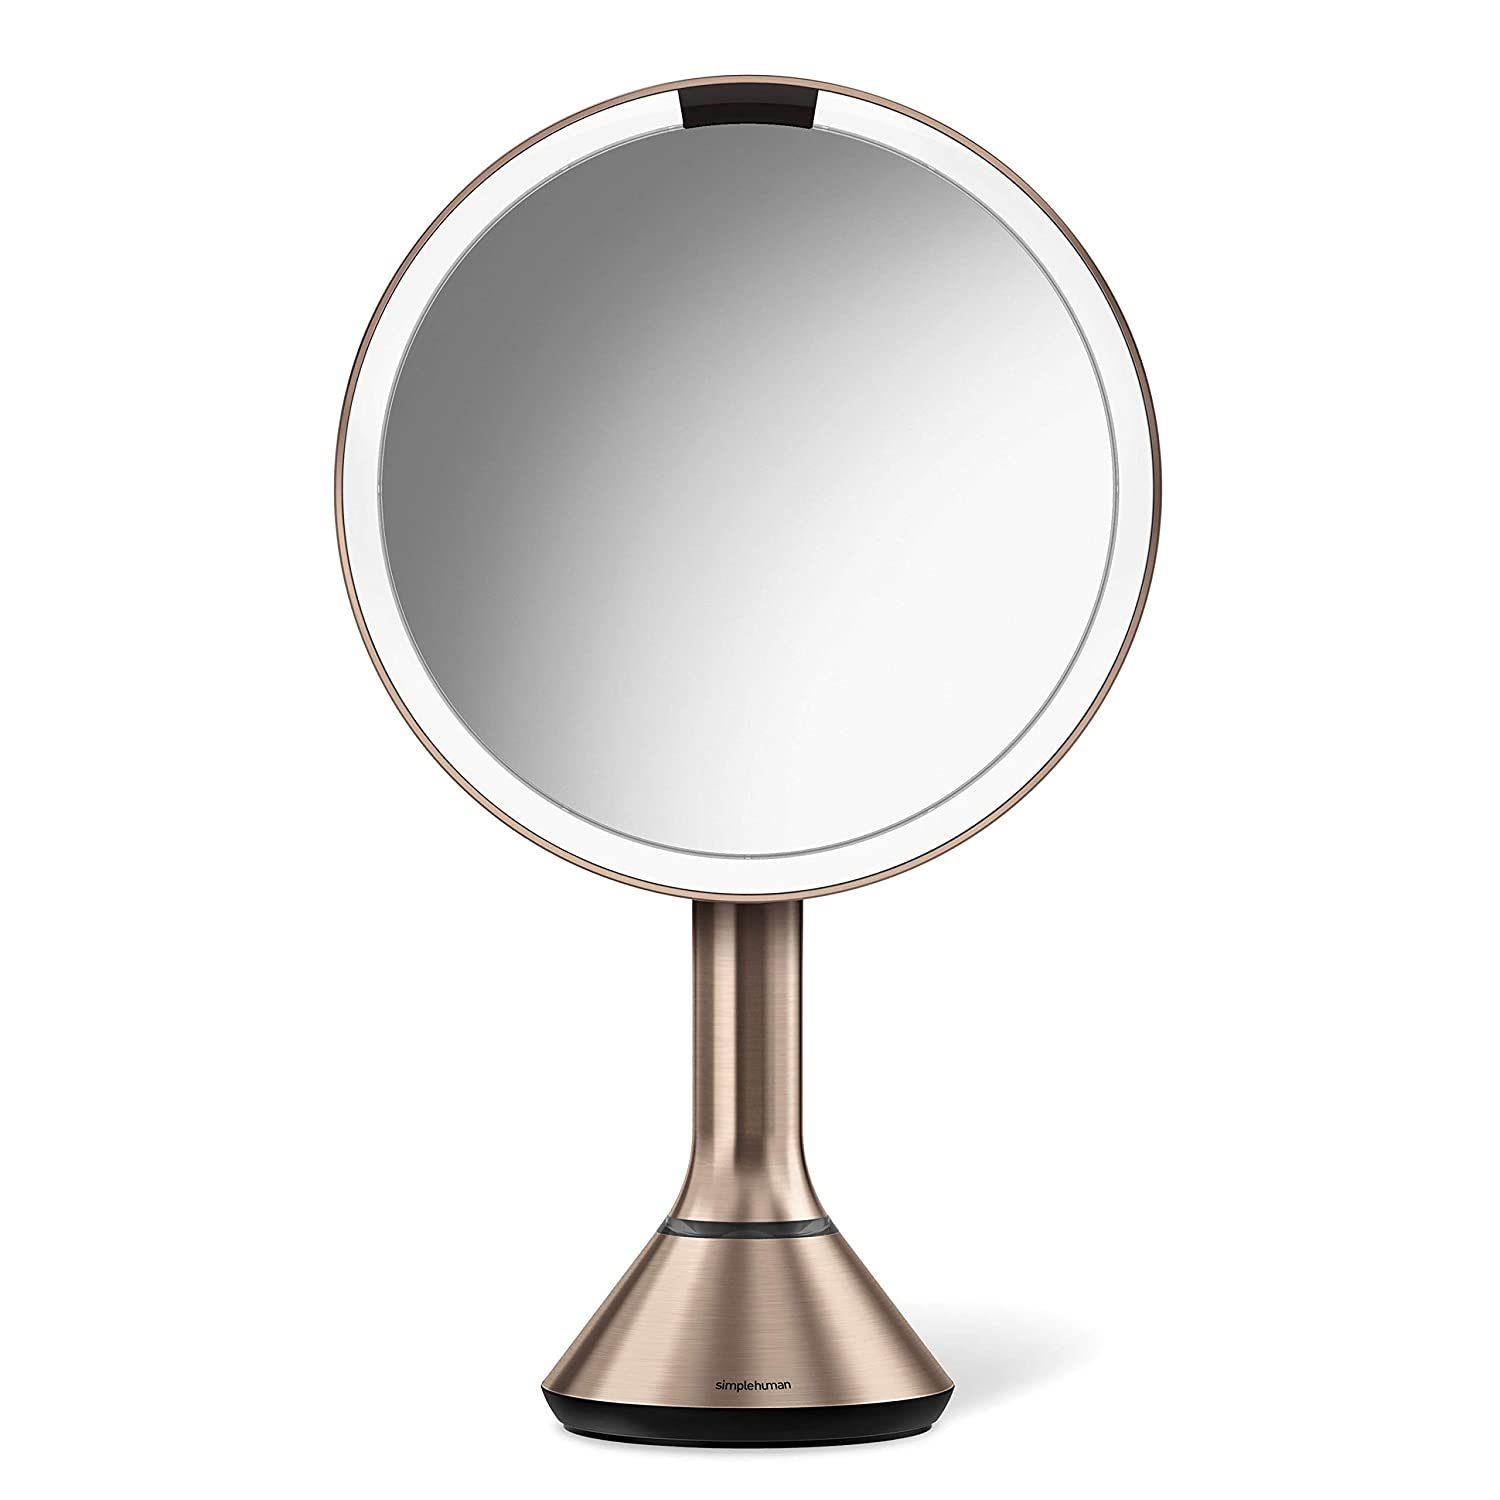 Simplehuman Lighted Makeup Mirror.Simplehuman Sensor Lighted Makeup Vanity Mirror 8 Round With Touch Control Brightness 5x Magnification Rose Gold Stainless Steel Rechargeable And